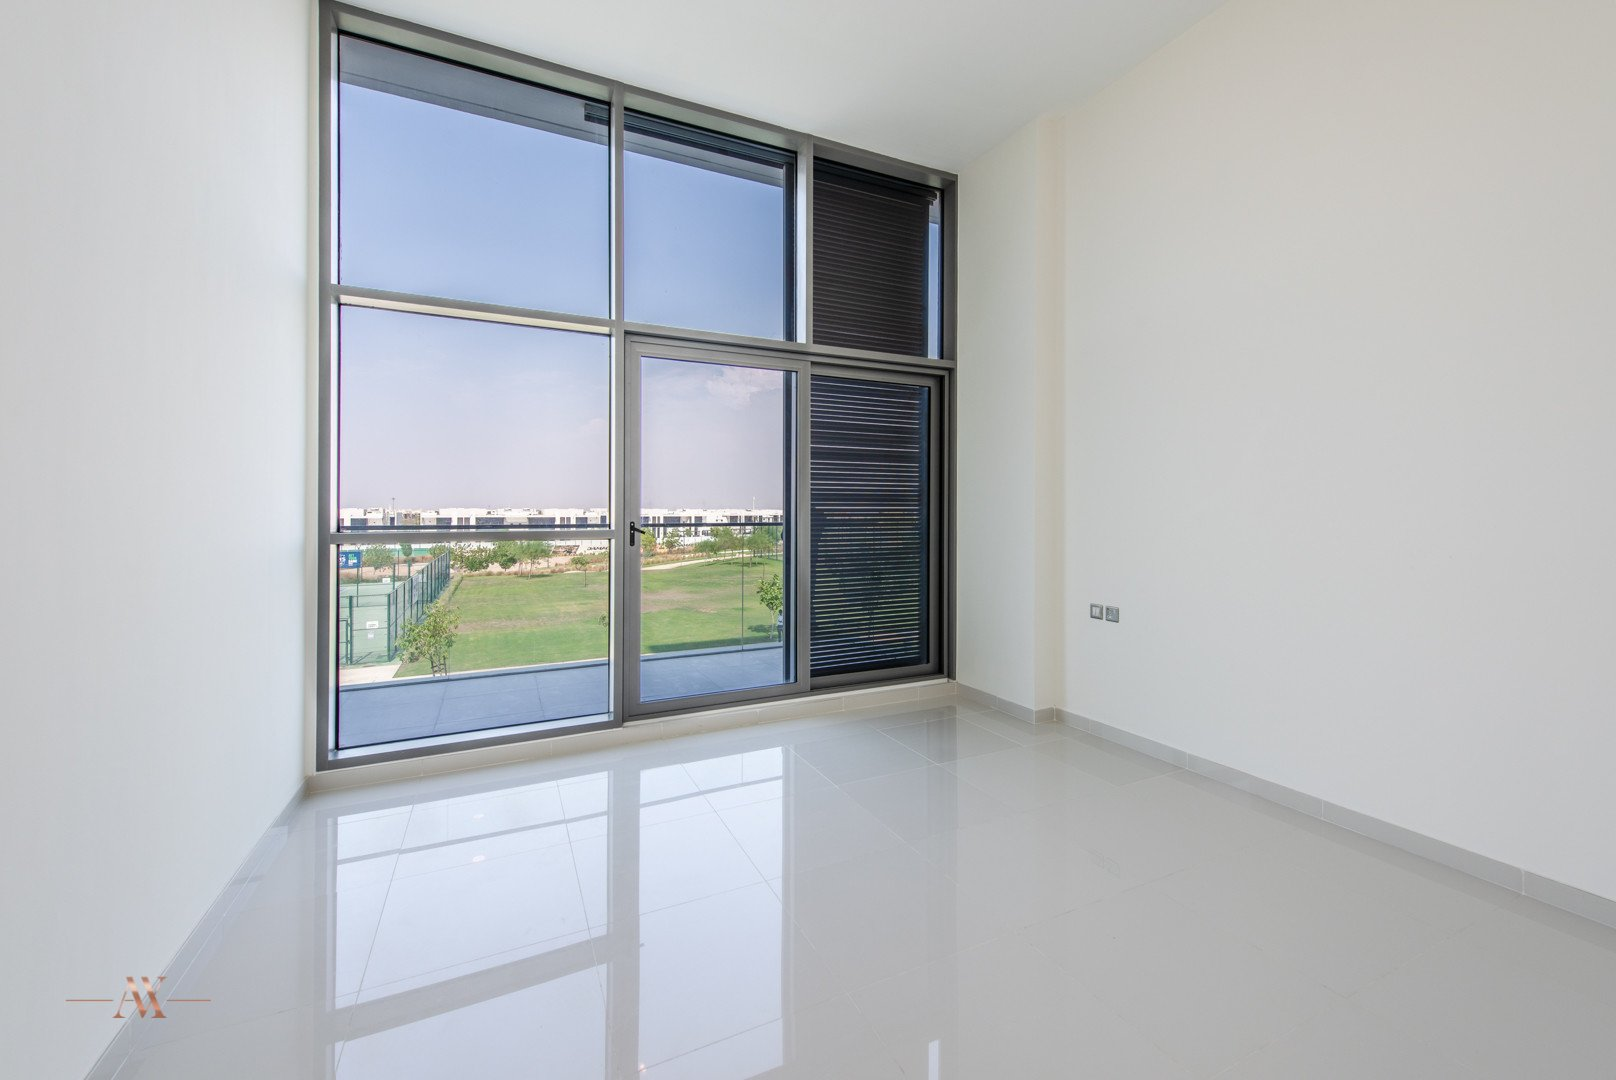 Townhouse for sale in Dubai, UAE, 3 bedrooms, 362.9 m2, No. 23666 – photo 7